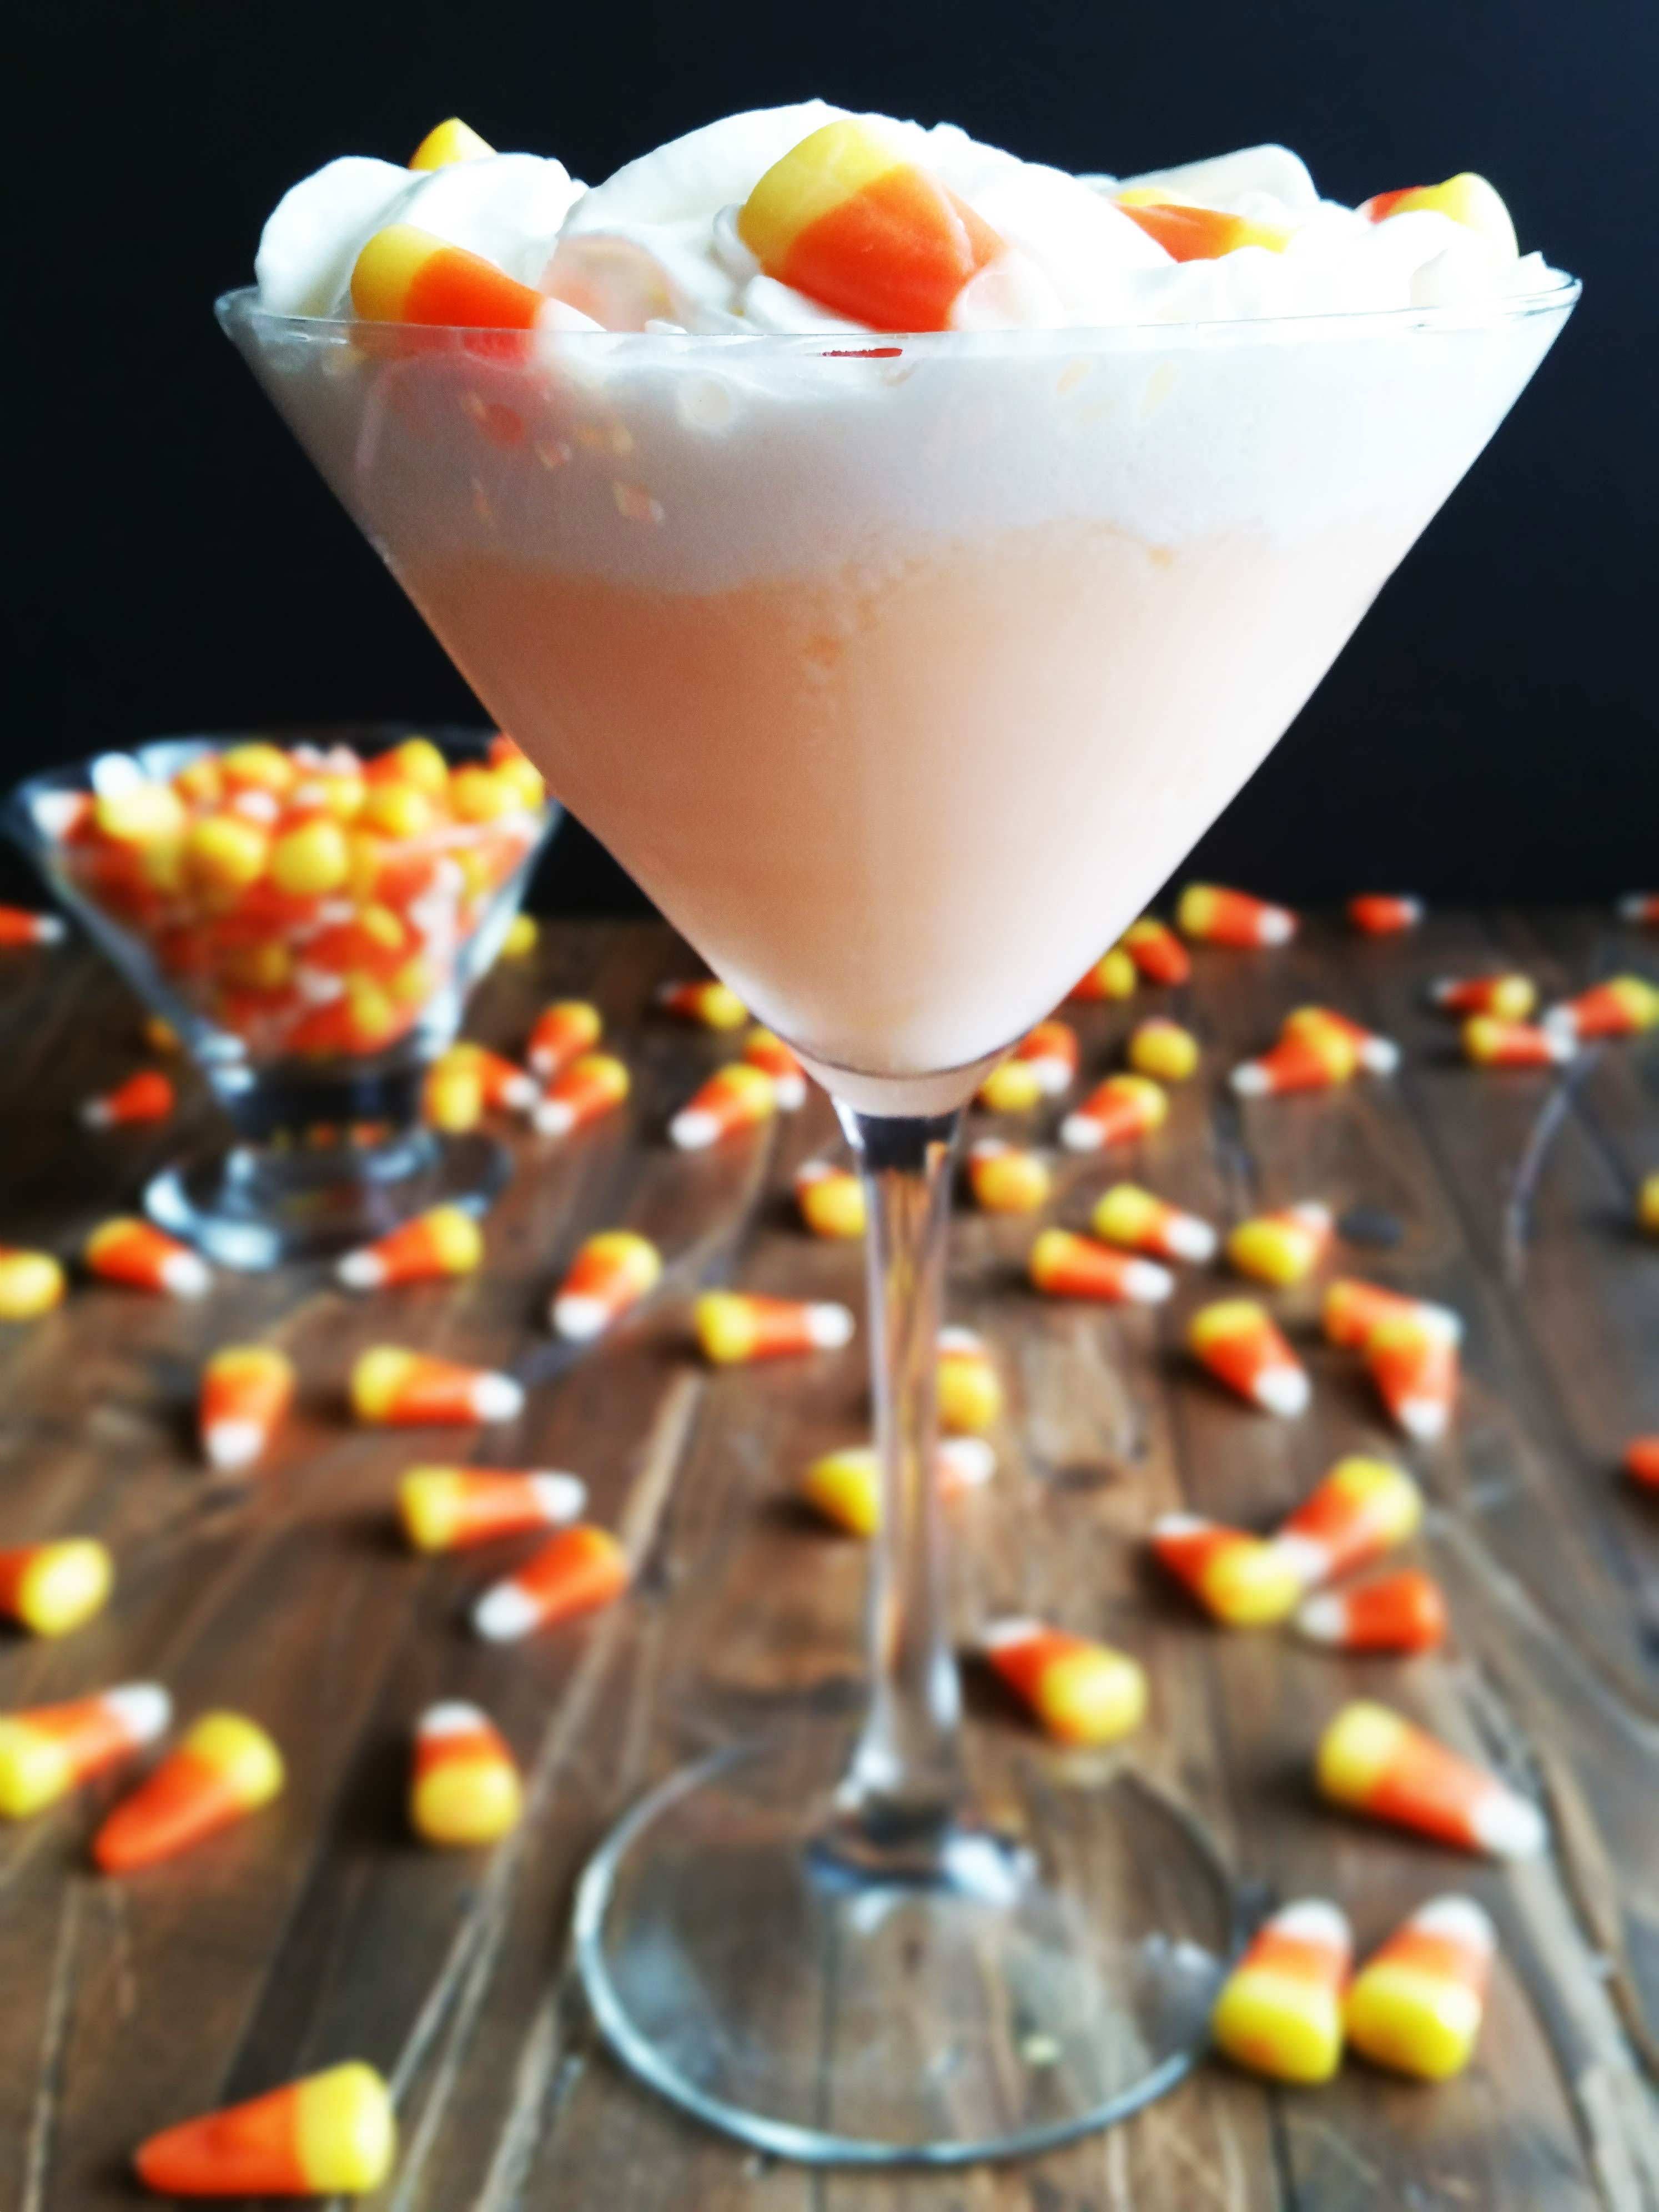 No need to eat all your trick-or-treaters' candy this year with this Candy Corn Martini! This is so creamy, dreamy and yumma, yumma, yumma! I made my first infused vodka with candy corn for this recipe and added a hint of butterscotch schnapps, half and half and pineapple juice.